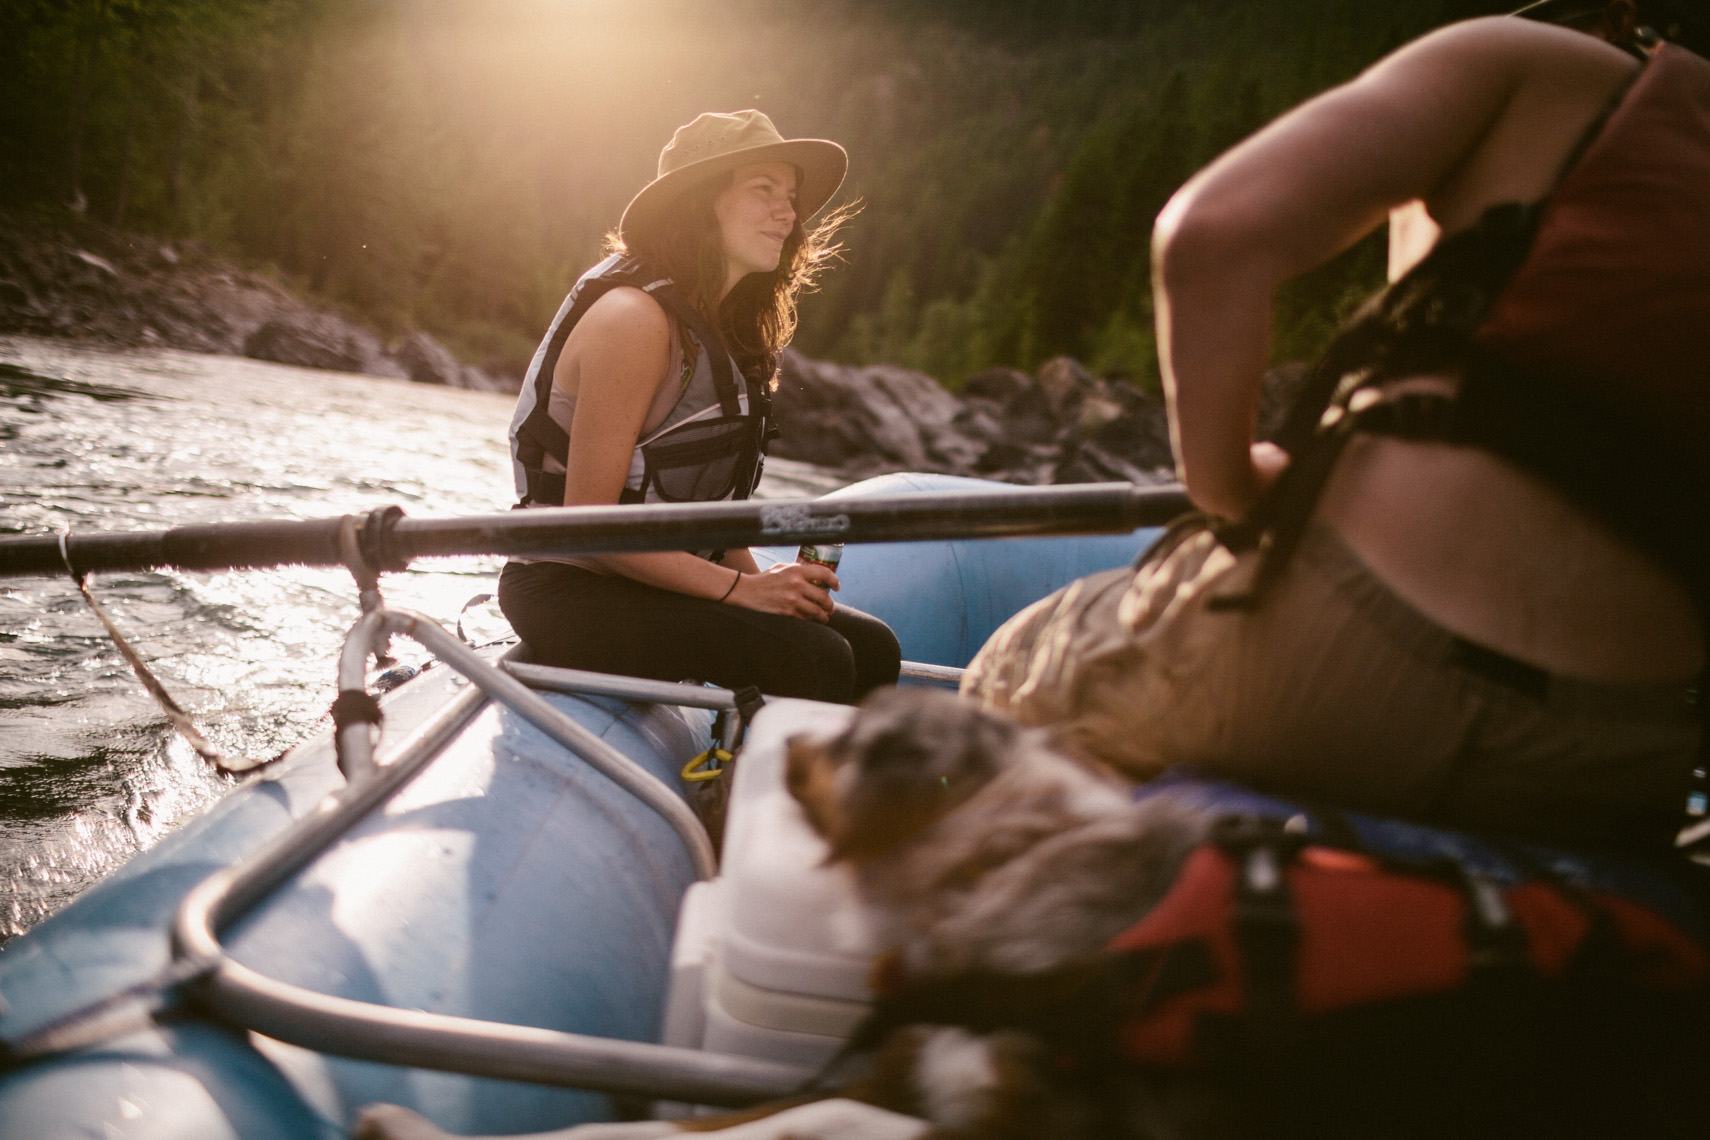 Adventure and outdoor lifestyle photogaph by Forest Woodward rafting in Glacier National Park